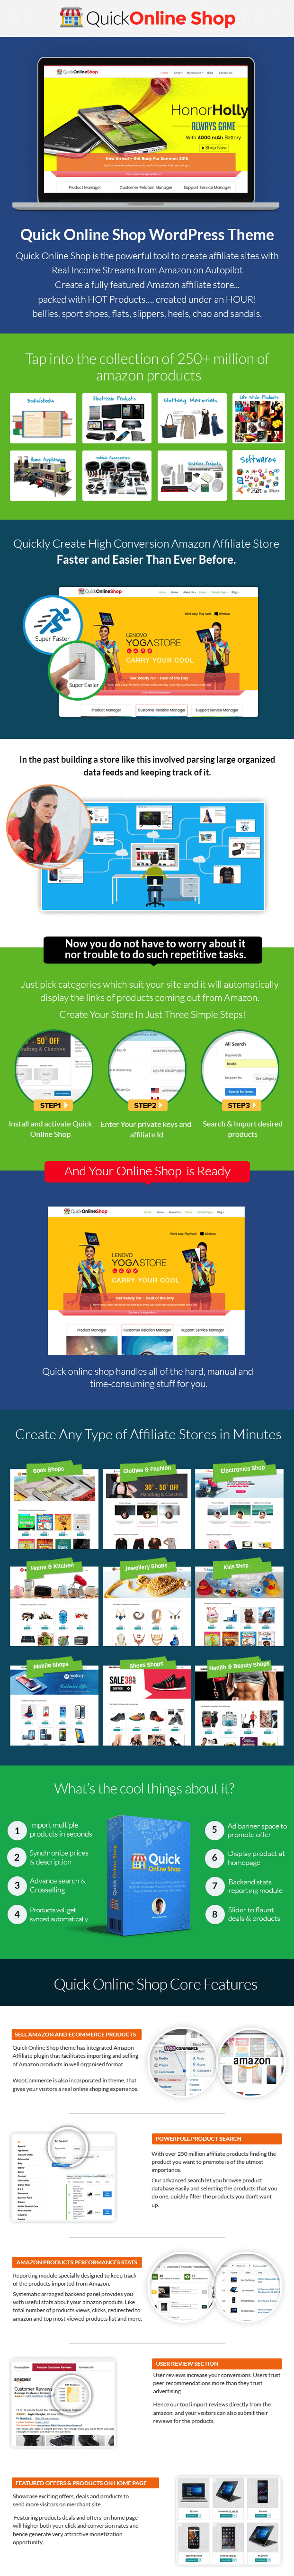 quick-online-shop-wp-tema-1